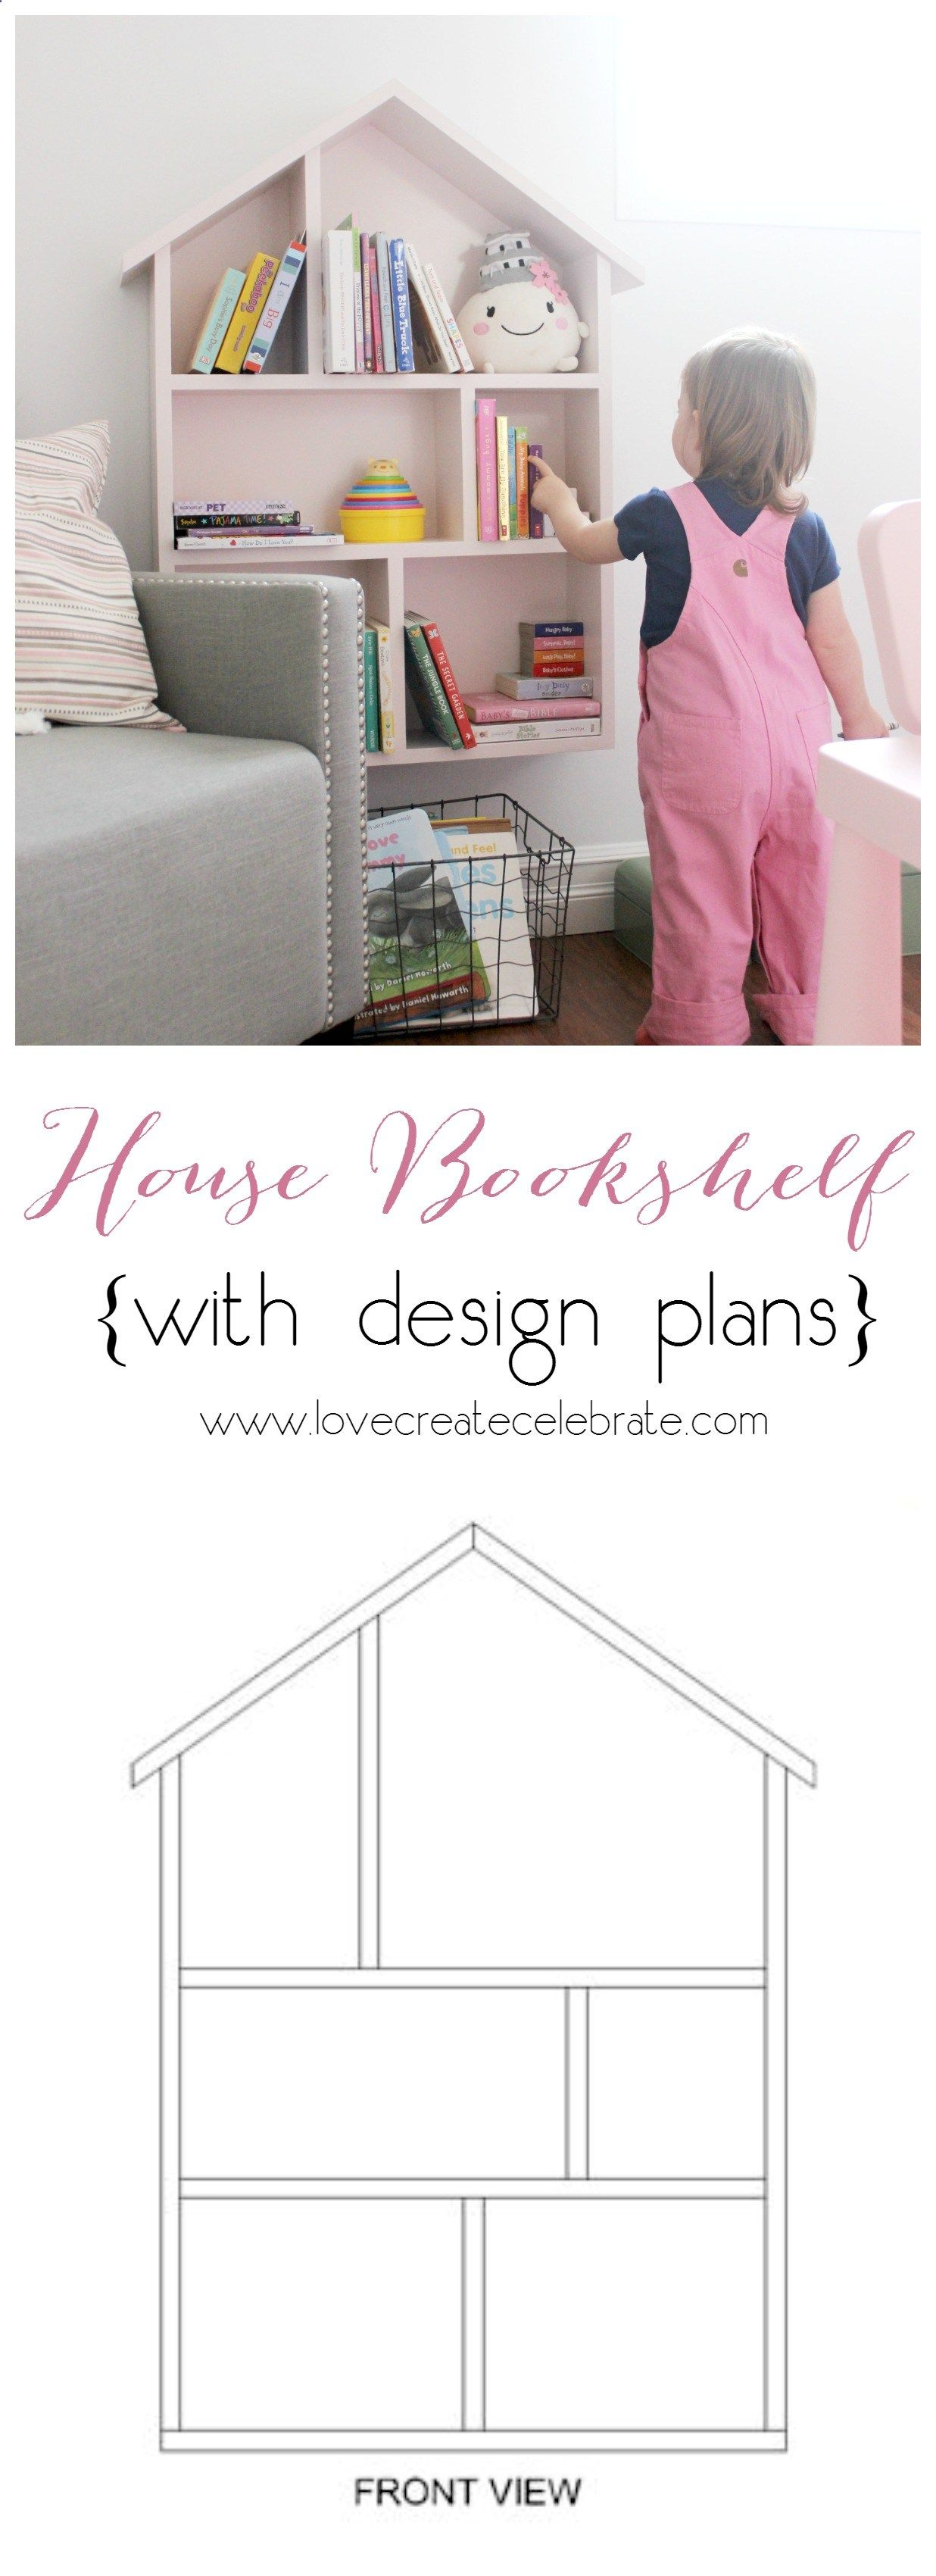 DIY House Bookshelf for your childrens bedroom or playroom. Step-by-step tutorial, and design plans included!